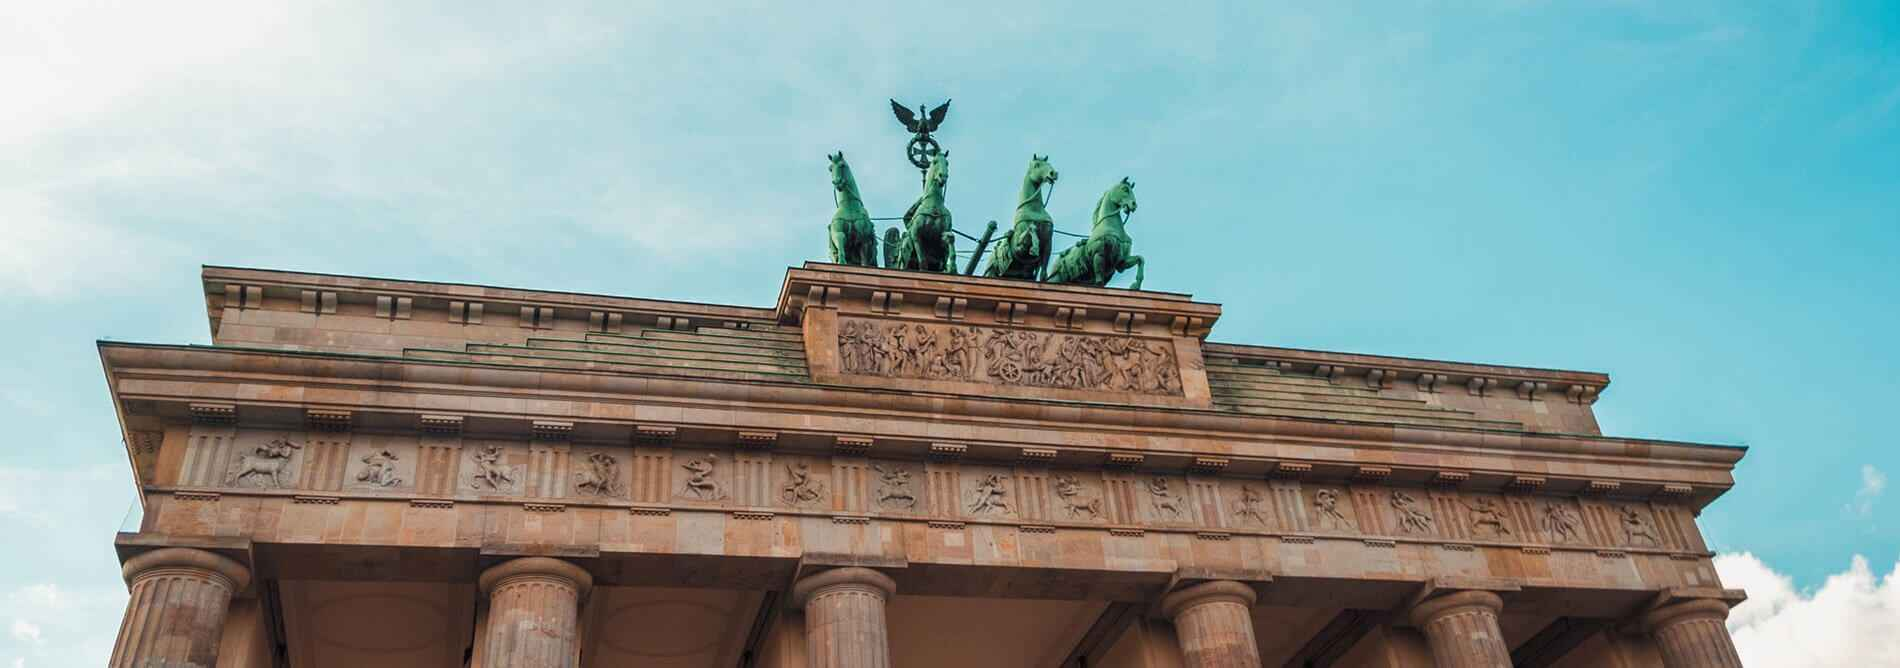 Berlin Free Walking Tour